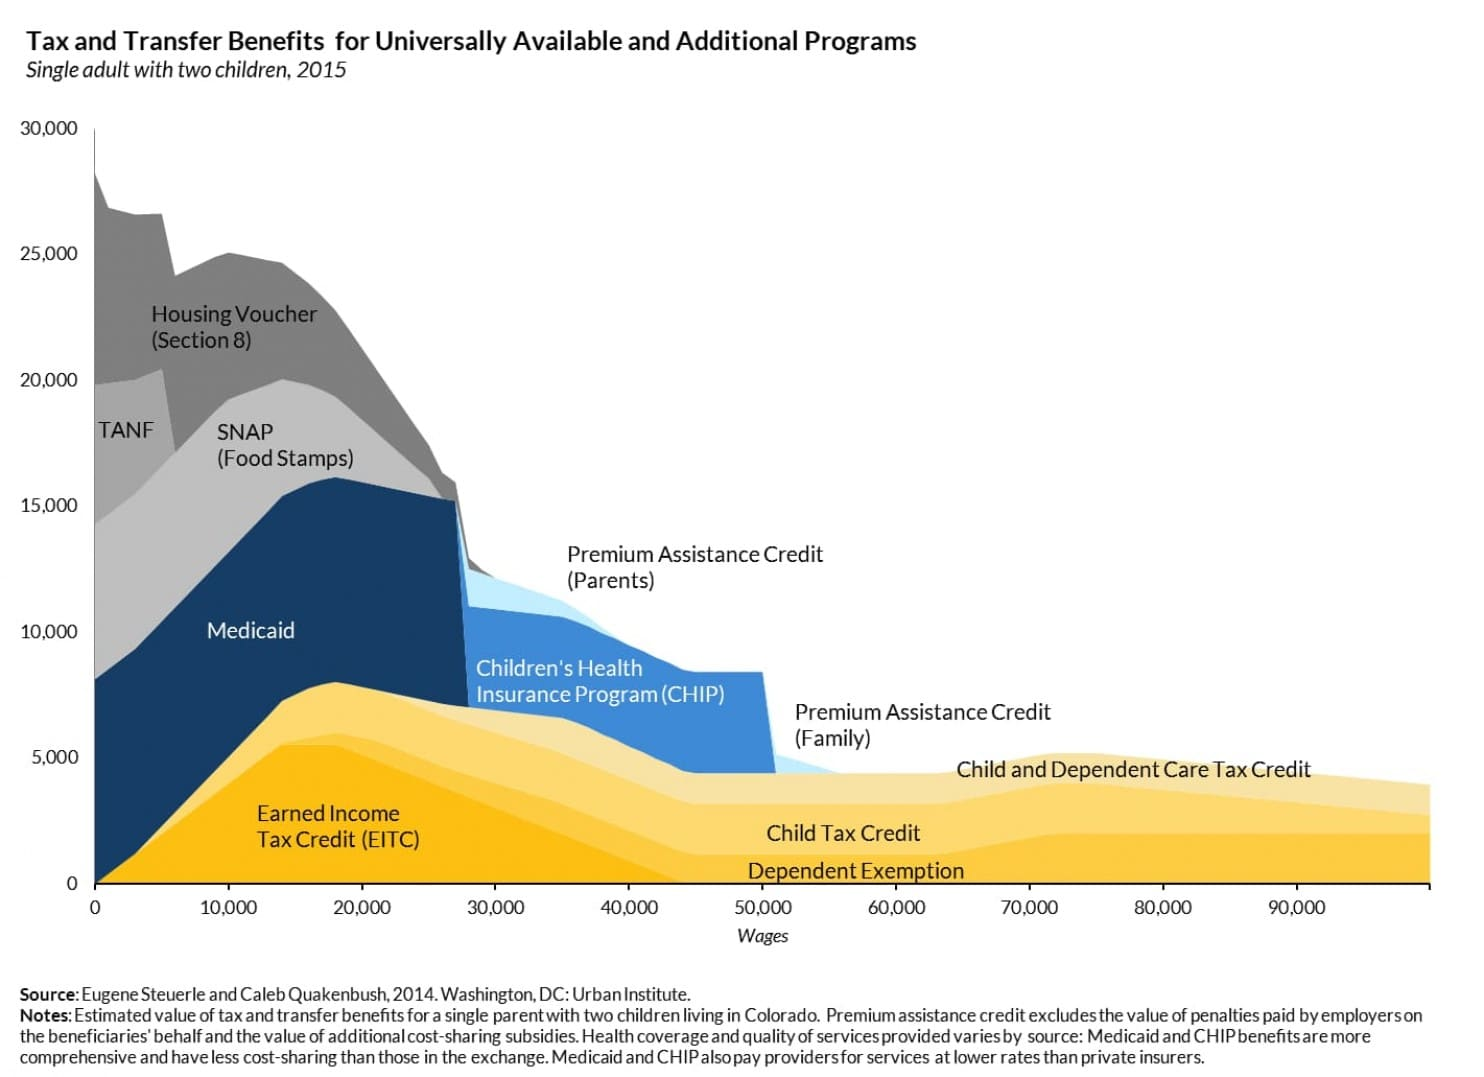 declining benefit program participation with increased income